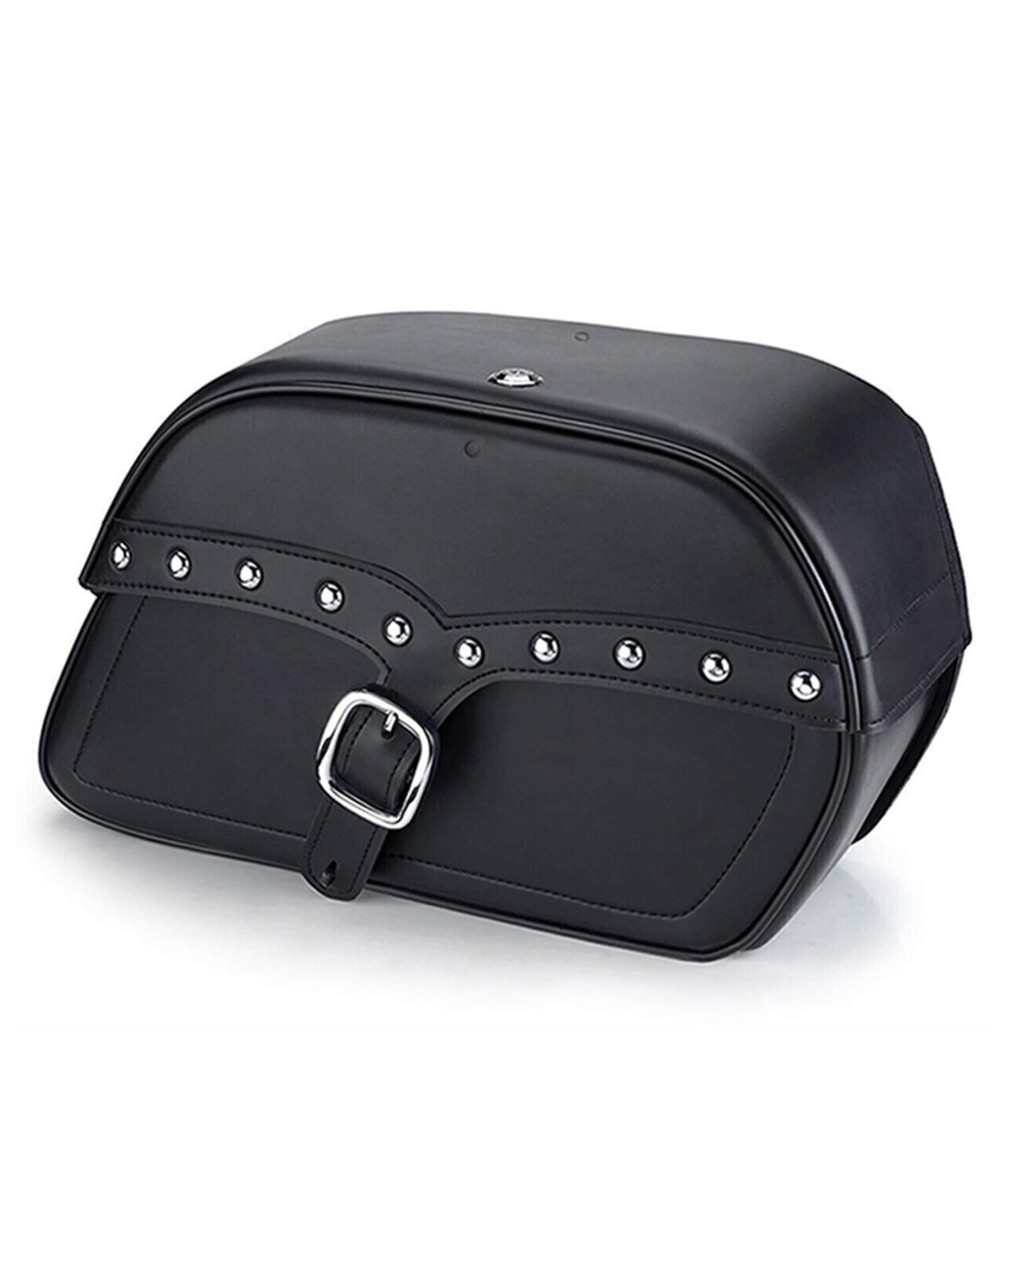 Viking shock Cutout Slanted Studded SS Large Motorcycle Saddlebags For Harley Dyna Switchback Main View